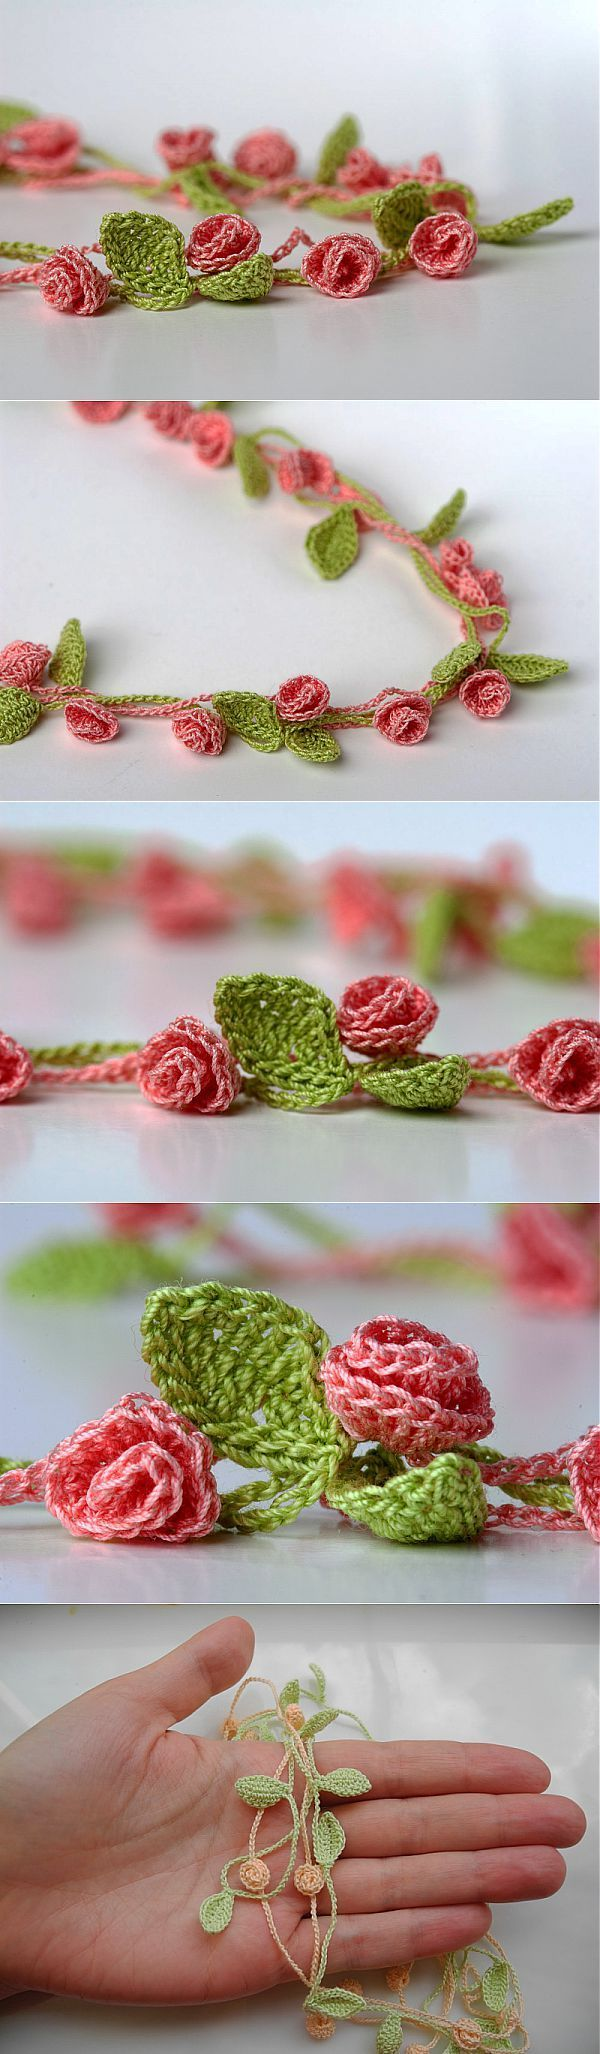 """Flowers sharshik-necklace (hook). [   """"Not sure about instructions, just posting for the prettiness and inspiration Mais"""",   """"Inspiration only. Do not go to site, it is full of viruses!"""",   """"you can with us by pattern, its very easy for you if you my and make diffrent with us , after than you can it your"""",   """" this is breath-taking! need to find the pattern!"""" ] #<br/> # #Crochet #Patterns,<br/> # #Knitting #Patterns,<br/> # #Crochet #Flower,<br/> # #Crocheting,<br/> # #Full #Of,<br/> #…"""